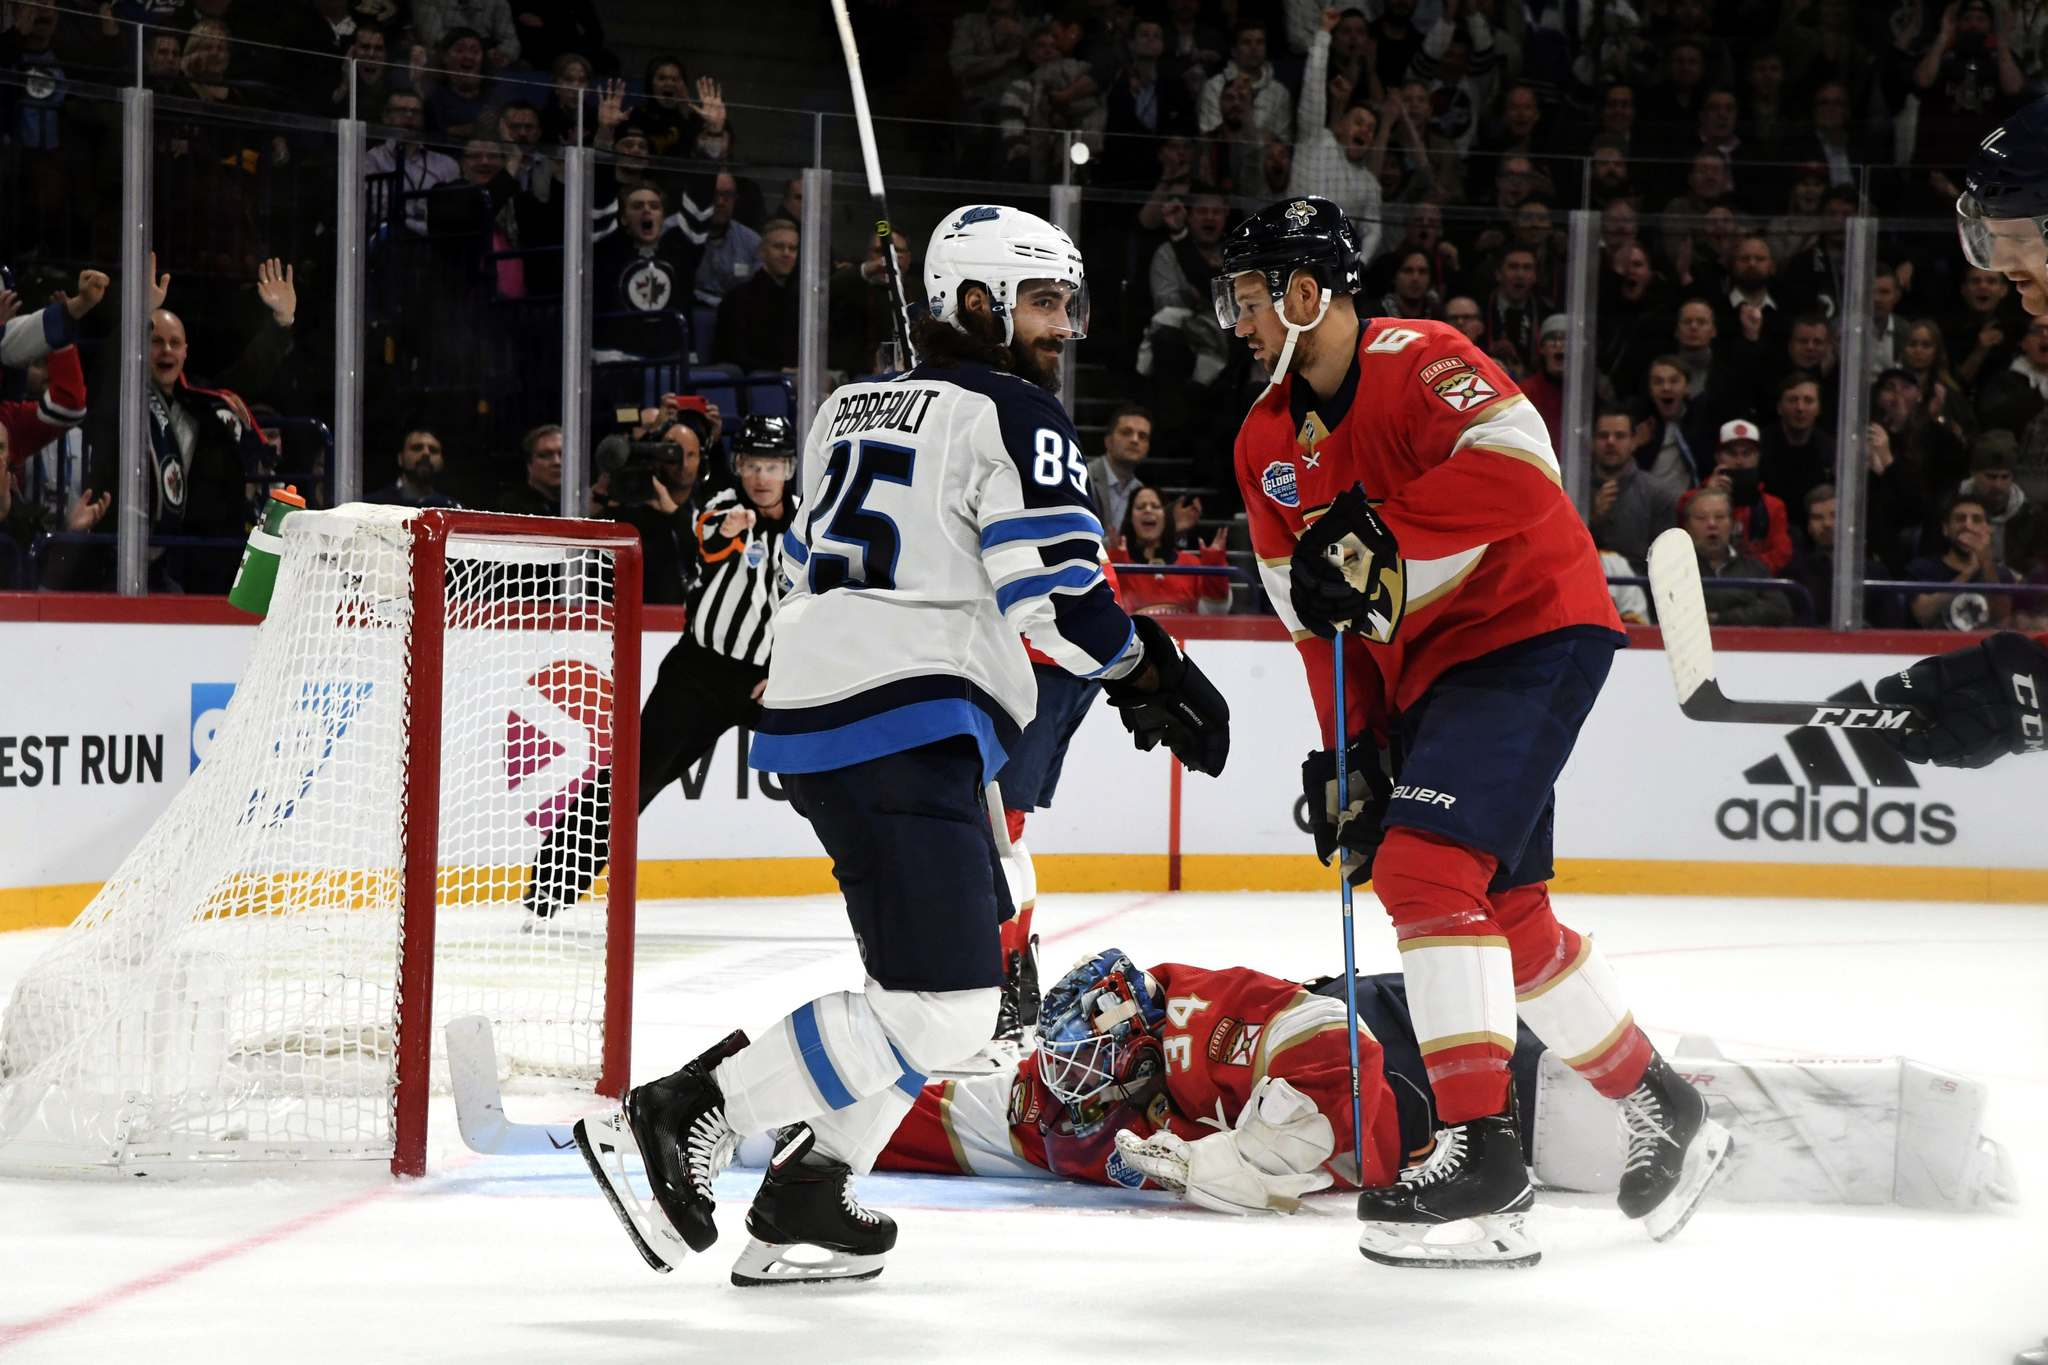 Heikki Saukkomaa / Lehtikuva / The Associated Press</p><p>Jets forward Mathieu Perreault (above, left) celebrates after scoring during Game 1 of the NHL Global Series.</p>